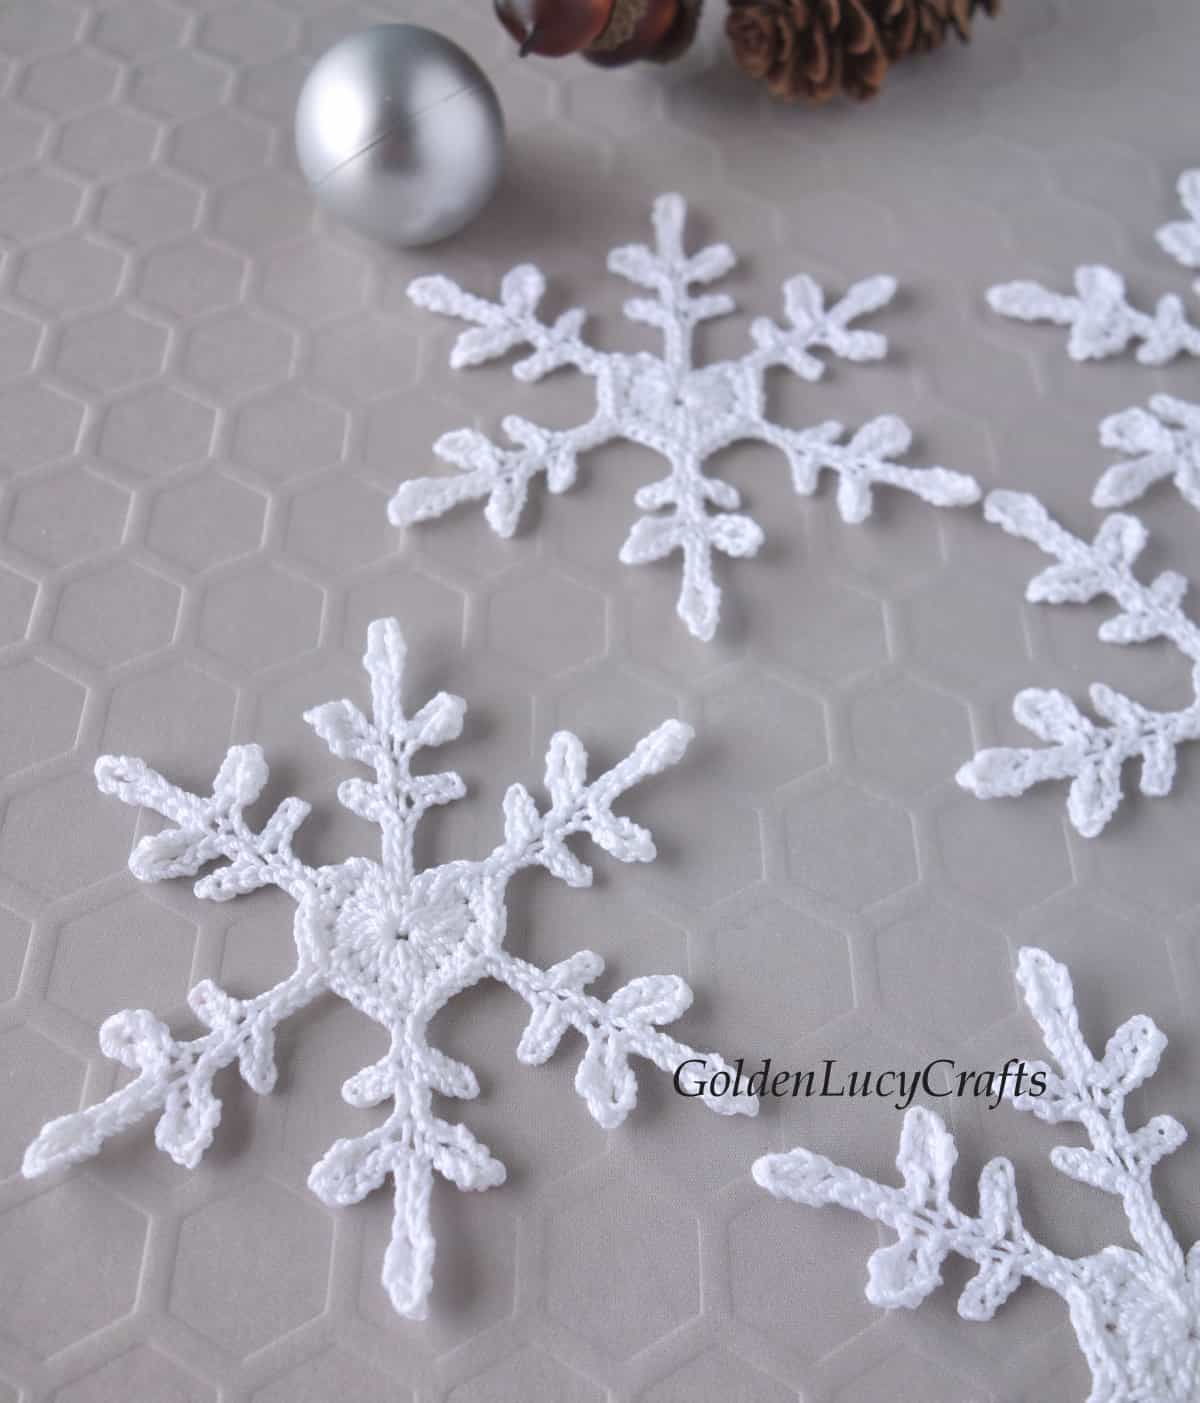 Crochet snowflake close up image.